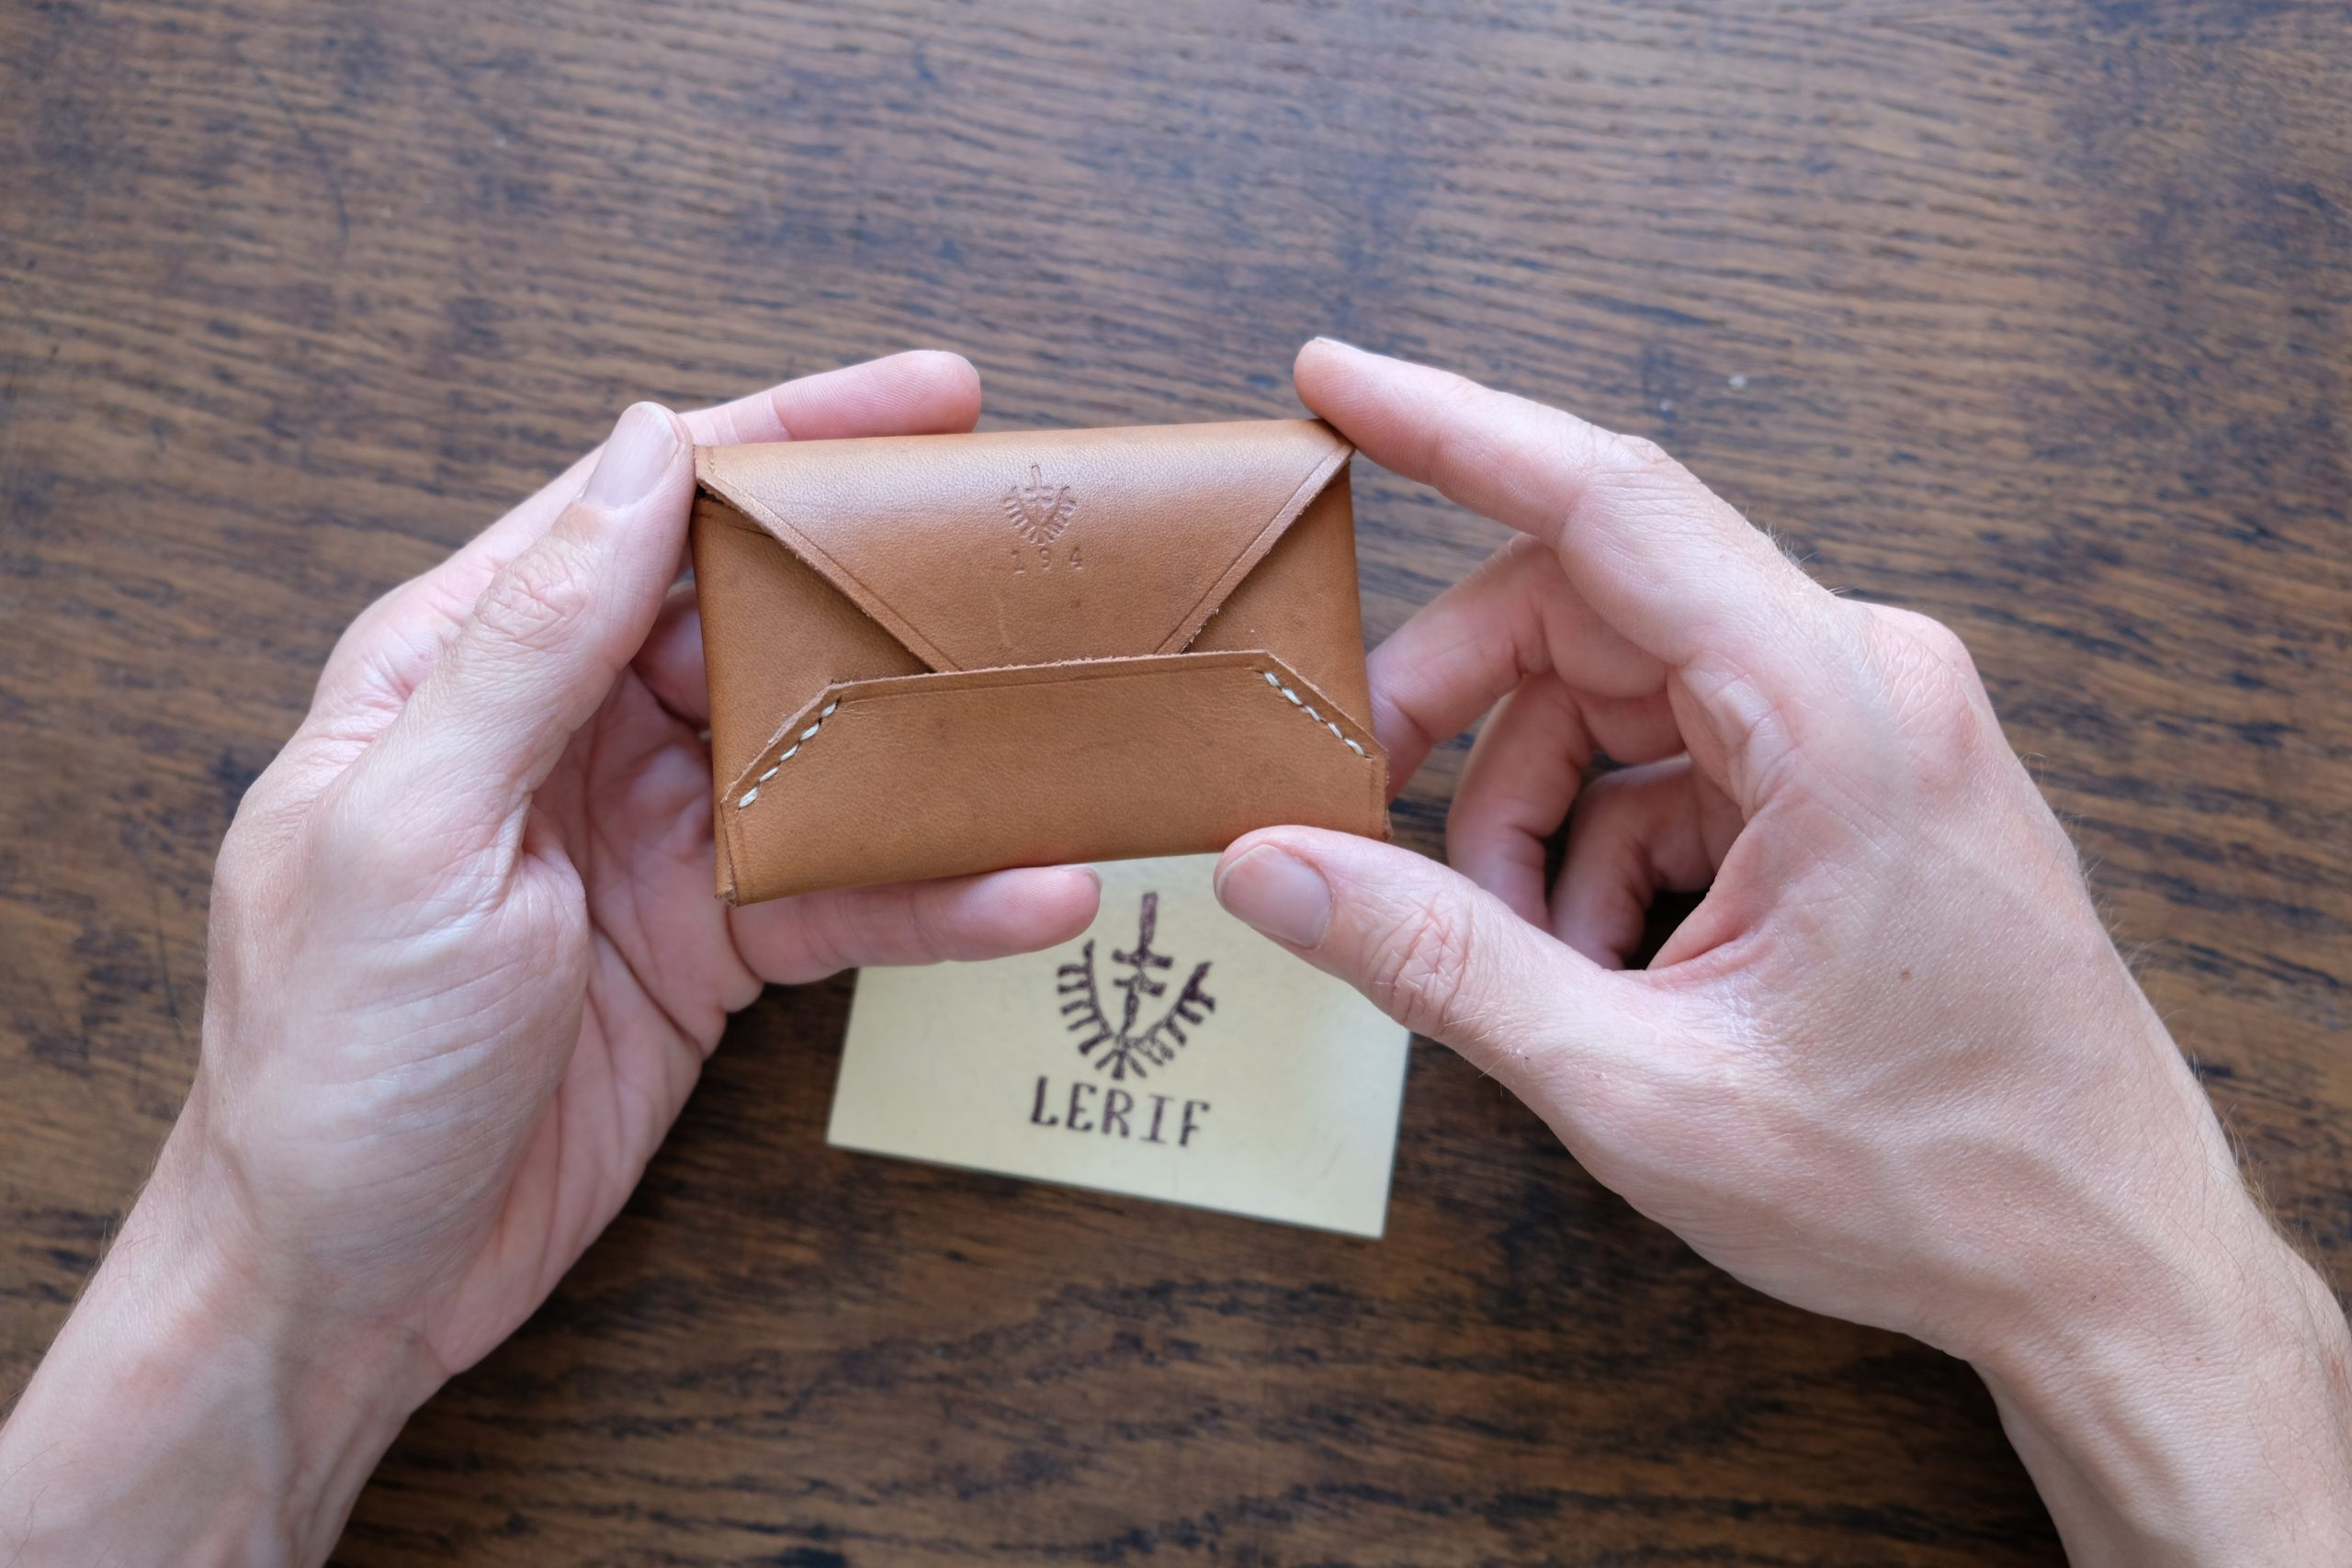 hands holding lerif designs leather airmail cardholder in walnut with wood and business card in background